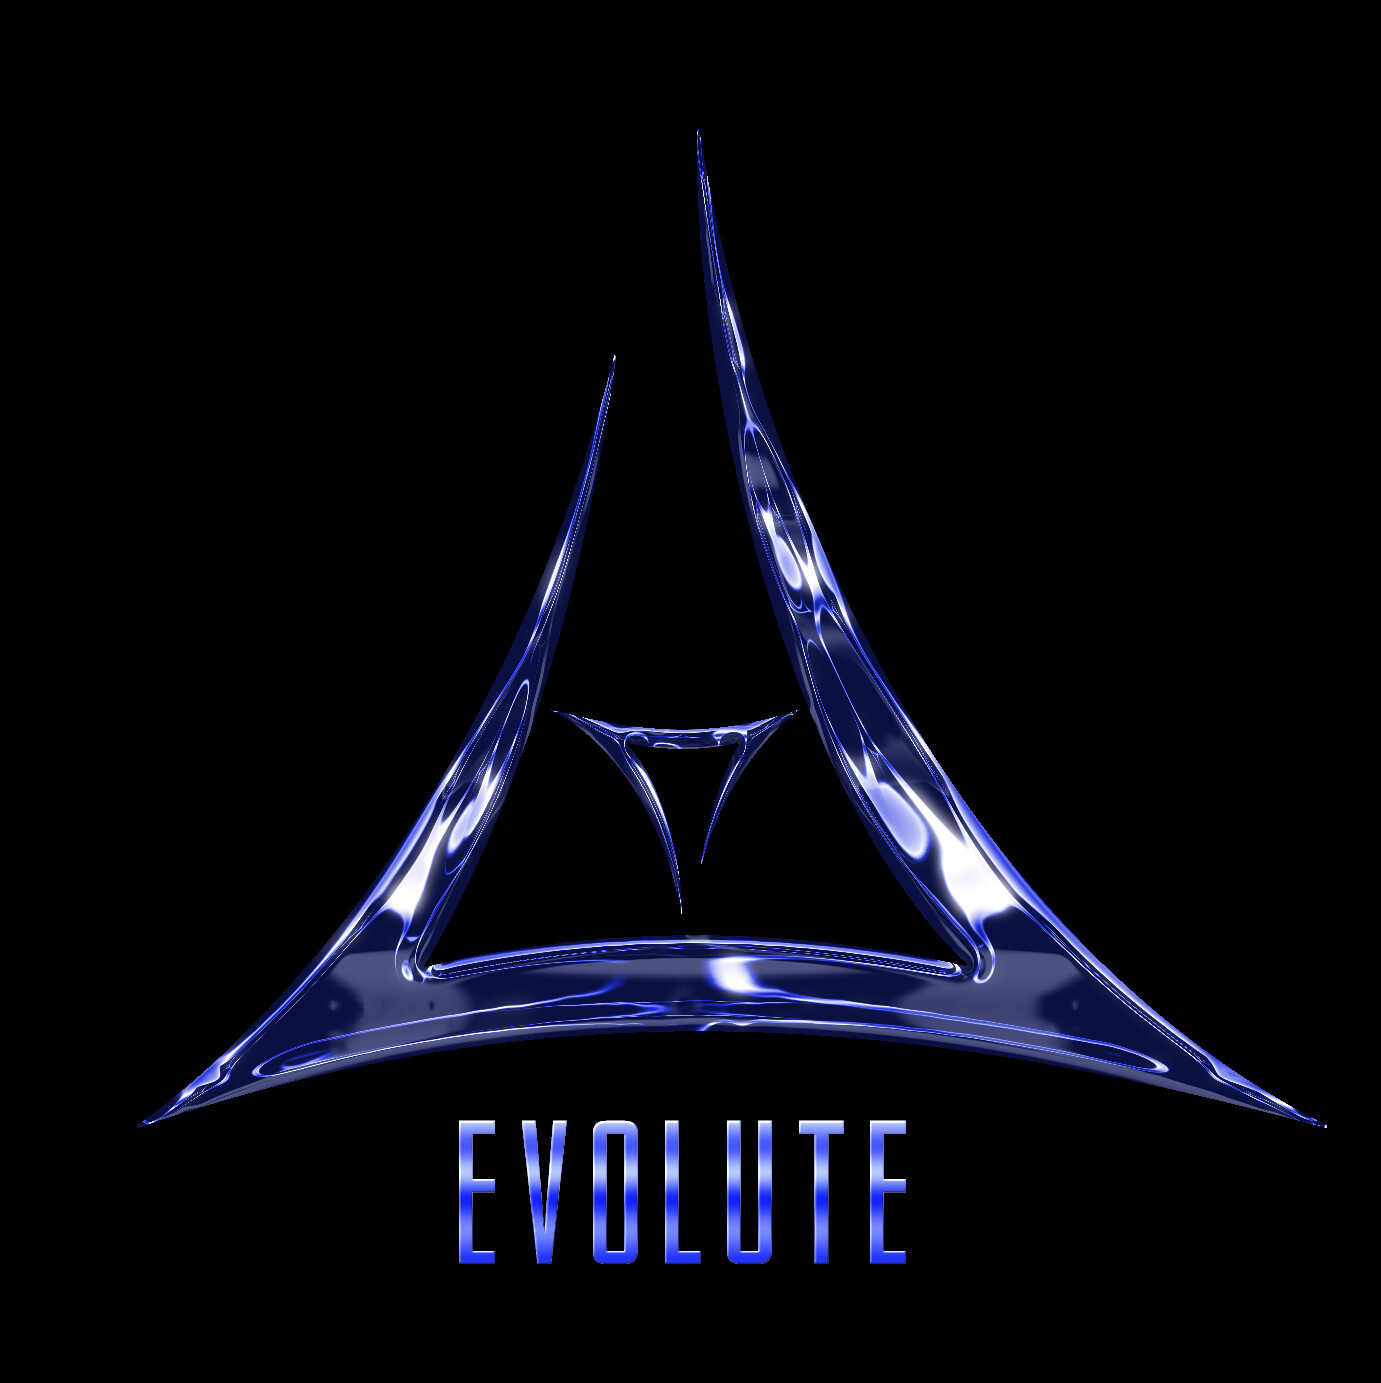 Evolute Logo and Animation